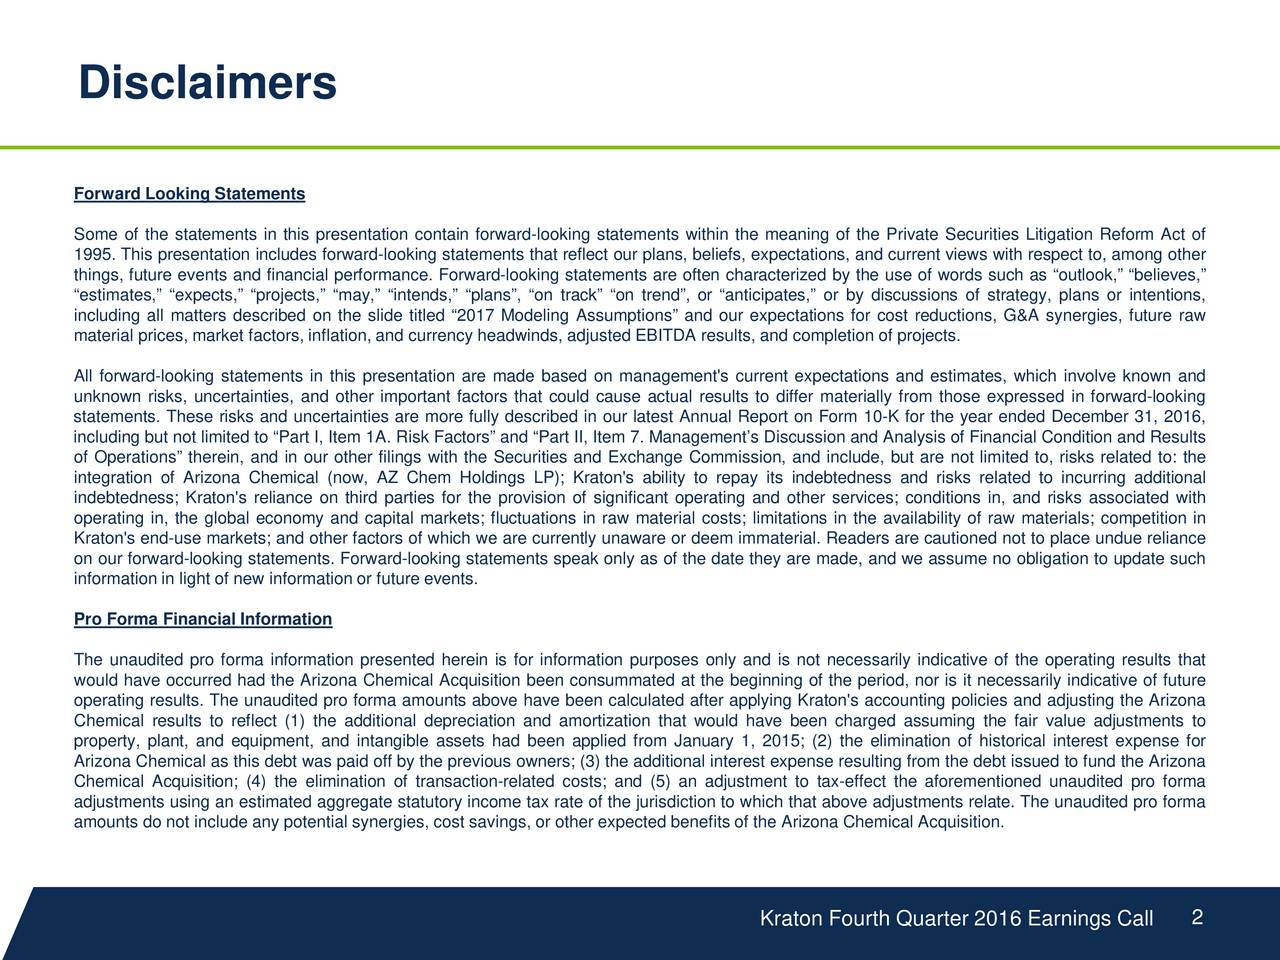 Forward Looking Statements Some of the statements in this presentation contain forward-looking statements within the meaning of the Private Securities Litigation Reform Act of 1995. This presentation includes forward-looking statements that reflect our plans, beliefs, expectations, and current views with respect to, among other things, future events and financial performance. Forward-looking statements are often characterized by the use of words such as outlook, believes, estimates, expects, projects, may, intends, plans, on track on trend, or anticipates, or by discussions of strategy, plans or intentions, including all matters described on the slide titled 2017 Modeling Assumptions and our expectations for cost reductions, G&A synergies, future raw material prices, market factors, inflation, and currency headwinds, adjusted EBITDA results, and completion of projects. All forward-looking statements in this presentation are made based on management's current expectations and estimates, which involve known and unknown risks, uncertainties, and other important factors that could cause actual results to differ materially from those expressed in forward-looking statements. These risks and uncertainties are more fully described in our latest Annual Report on Form 10-K for the year ended December 31, 2016, including but not limited to Part I, Item 1A Factors and Part II, Item 7. Managements Discussion and Analysis of Financial Condition and Results of Operations therein, and in our other filings with the Securities and Exchange Commission, and include, but are not limited to, risks related to: the integration of Arizona Chemical (now, AZ Chem Holdings LP); Kraton's ability to repay its indebtedness and risks related to incurring additional indebtedness; Kraton's reliance on third parties for the provision of significant operating and other services; conditions in, and risks associated with operating in, the global economy and capital markets; fluctuations in raw material 